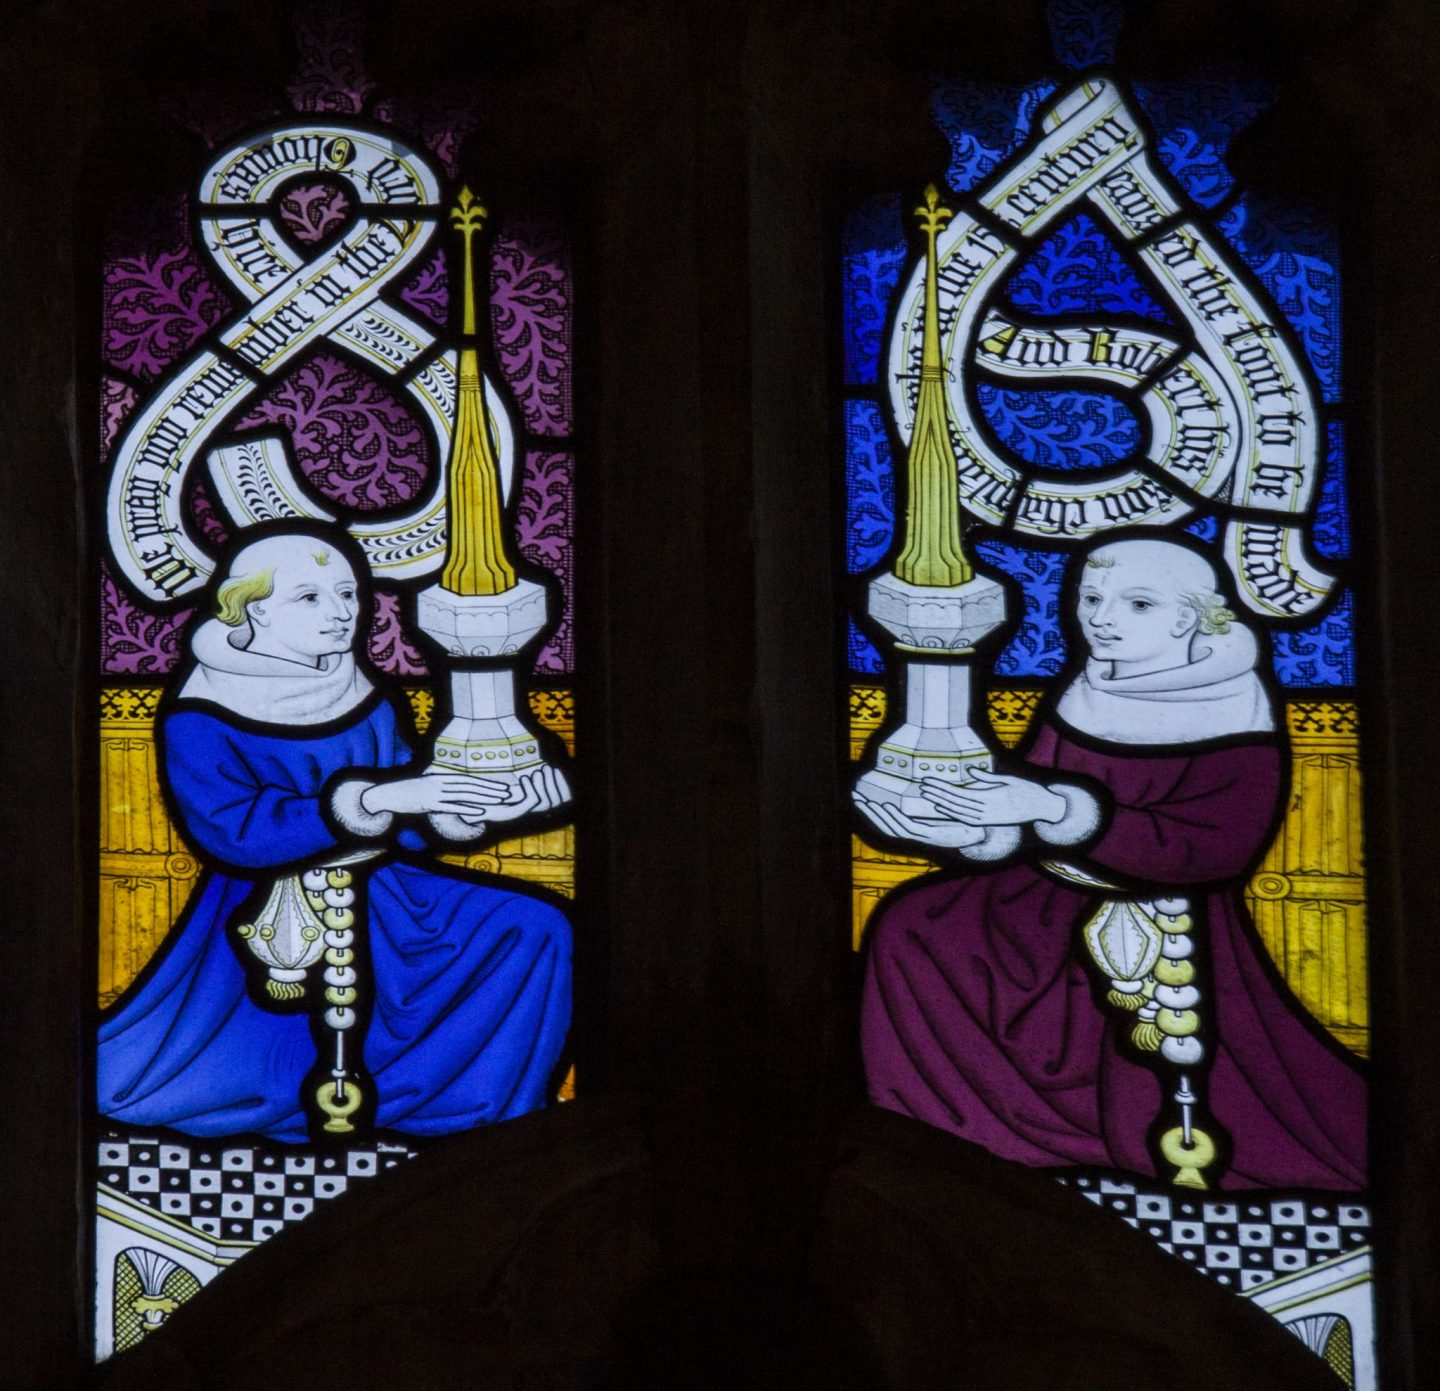 Detail of figures in the stained glass holding the font complete with covers.